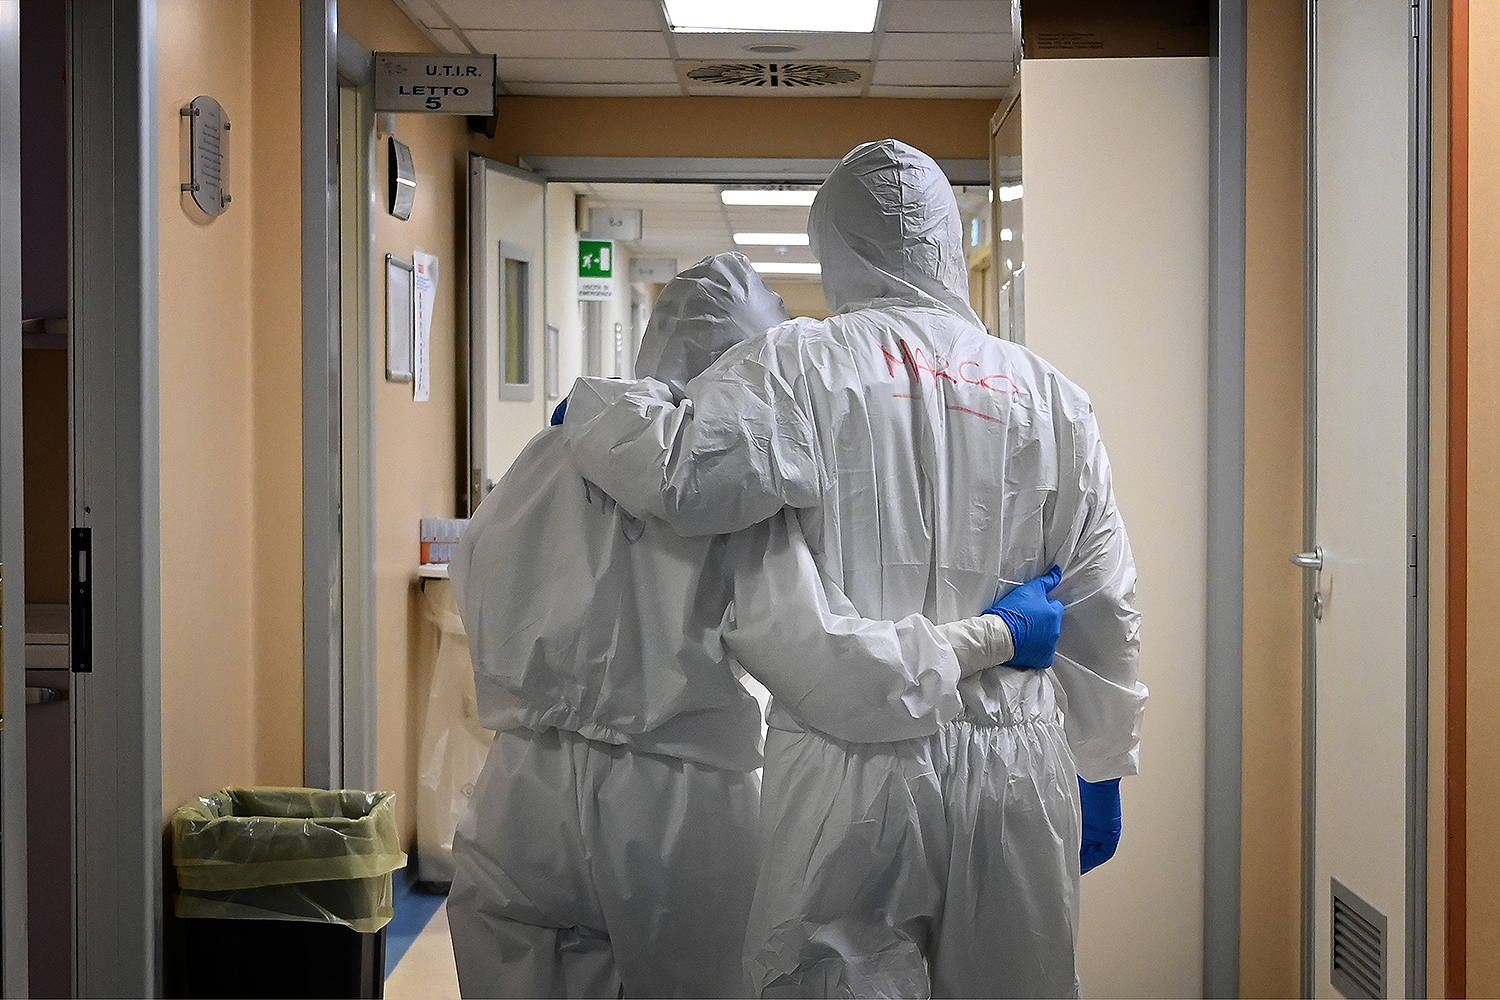 At the end of their shift treating COVID-19 patients, a doctor and nurse walk down a corridor in the intensive care unit of San Filippo Neri Hospital in Rome on April 20. ALBERTO PIZZOLI/AFP via Getty Images